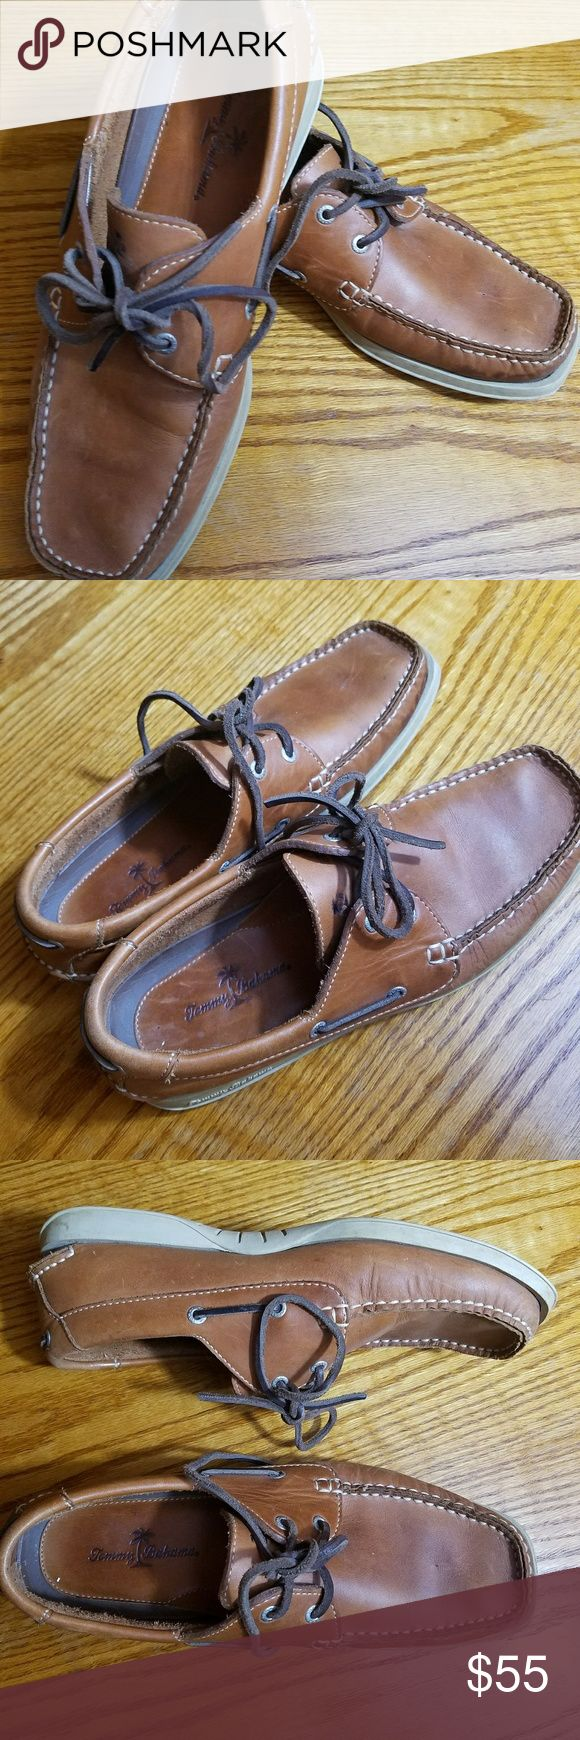 Tommy Bahamas Leather Boat shoe loafers Size 8 These are in excellent shape. Size : Mens 8 Leather boat shoes by Tommy Bahama Quality shoe all around.  Leather in great condition too Tommy Bahama Shoes Flats & Loafers